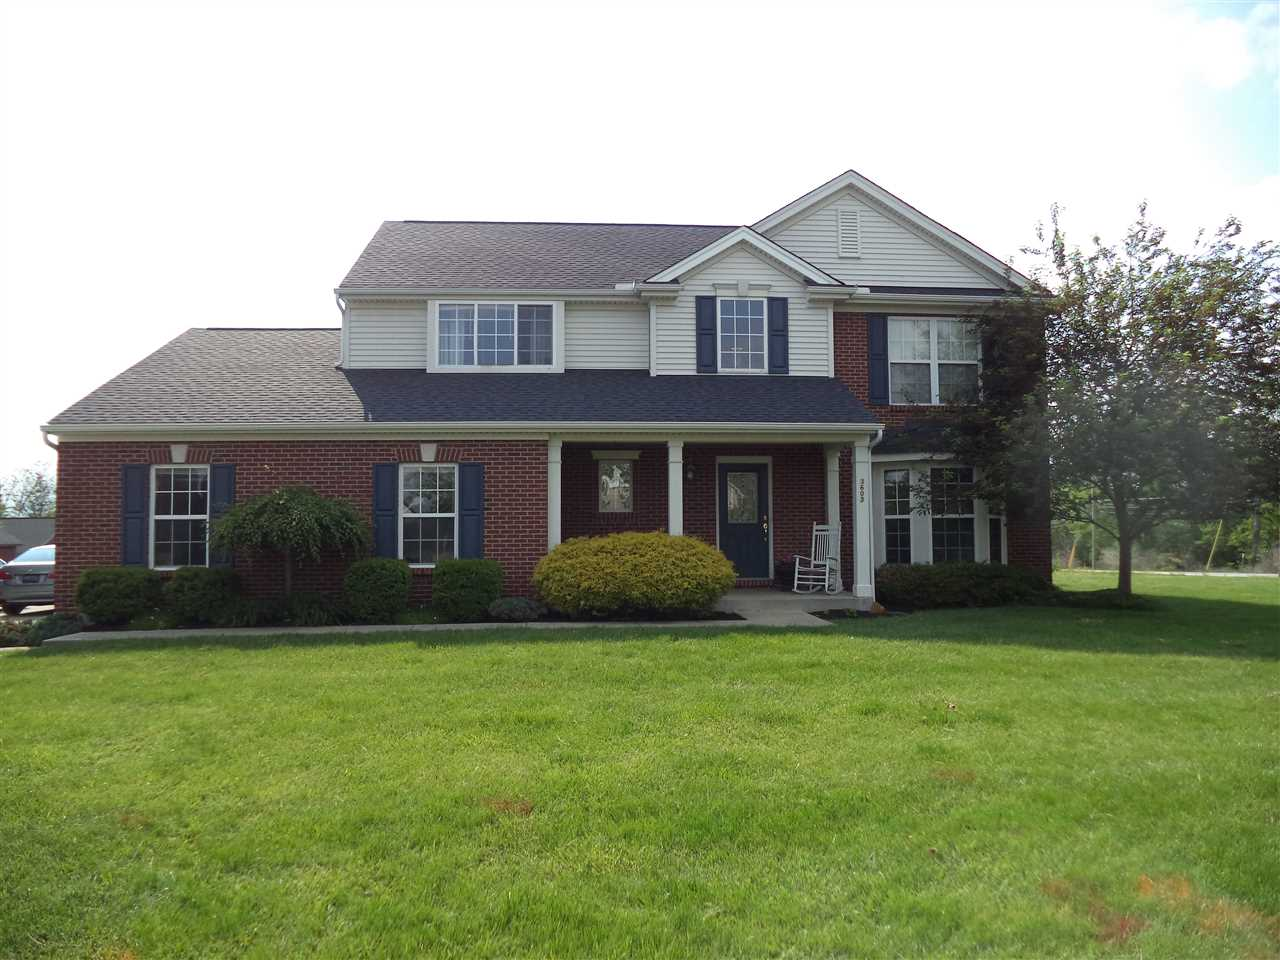 Photo 1 for 3603 Brents Way Burlington, KY 41005